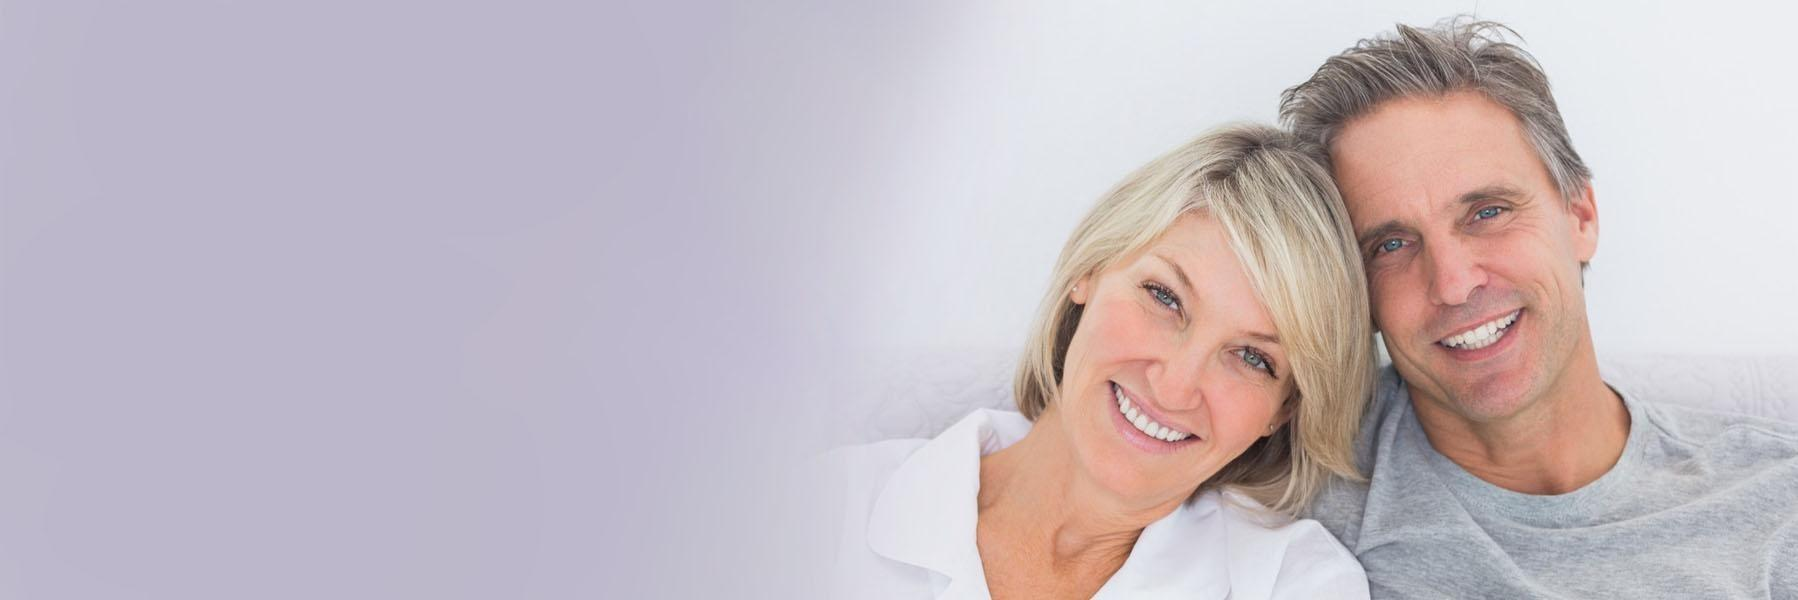 Couple | Dental Implants Portland OR